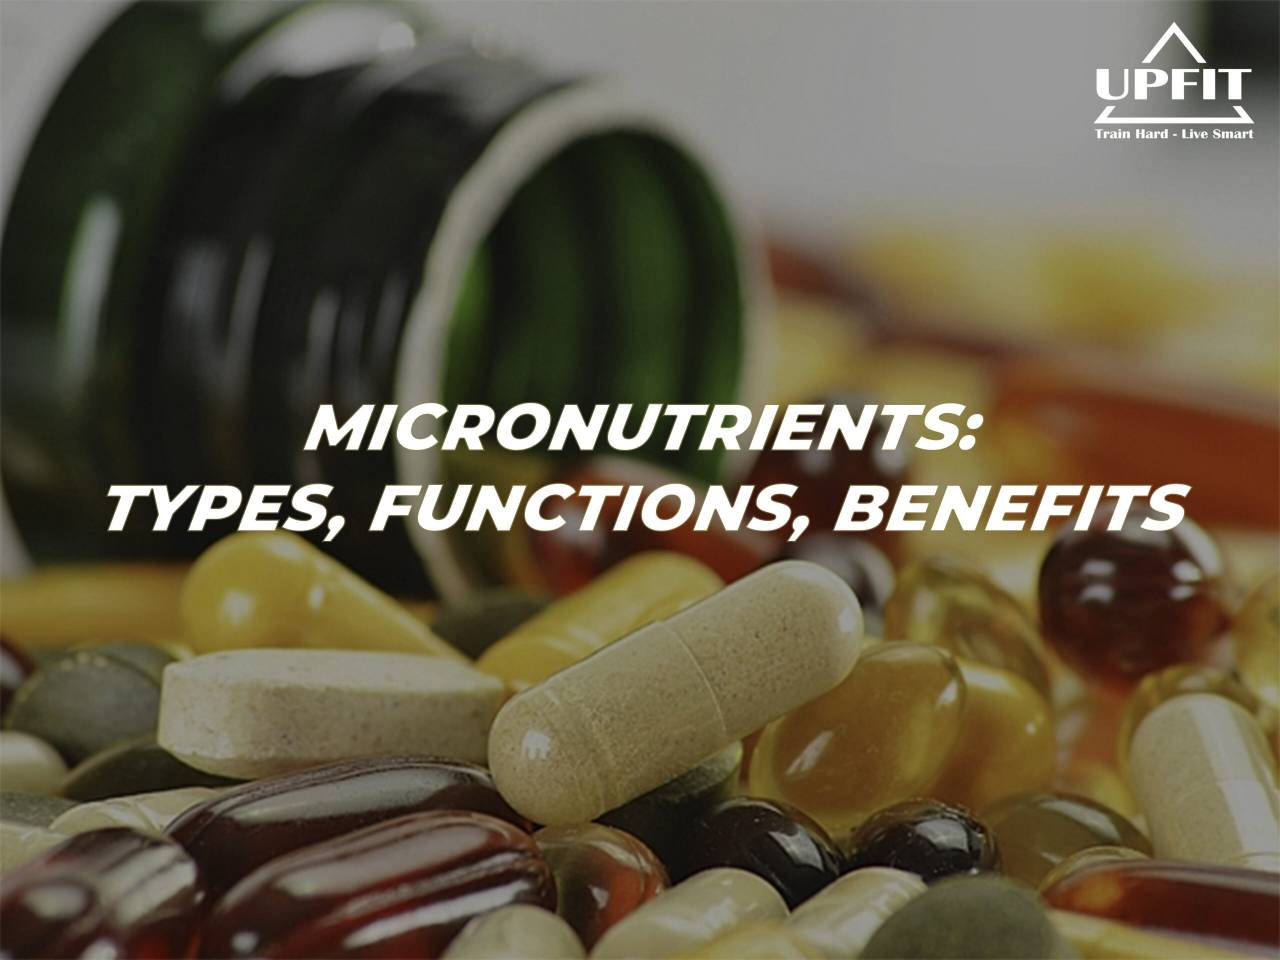 micronutrients: types, functions, benefits